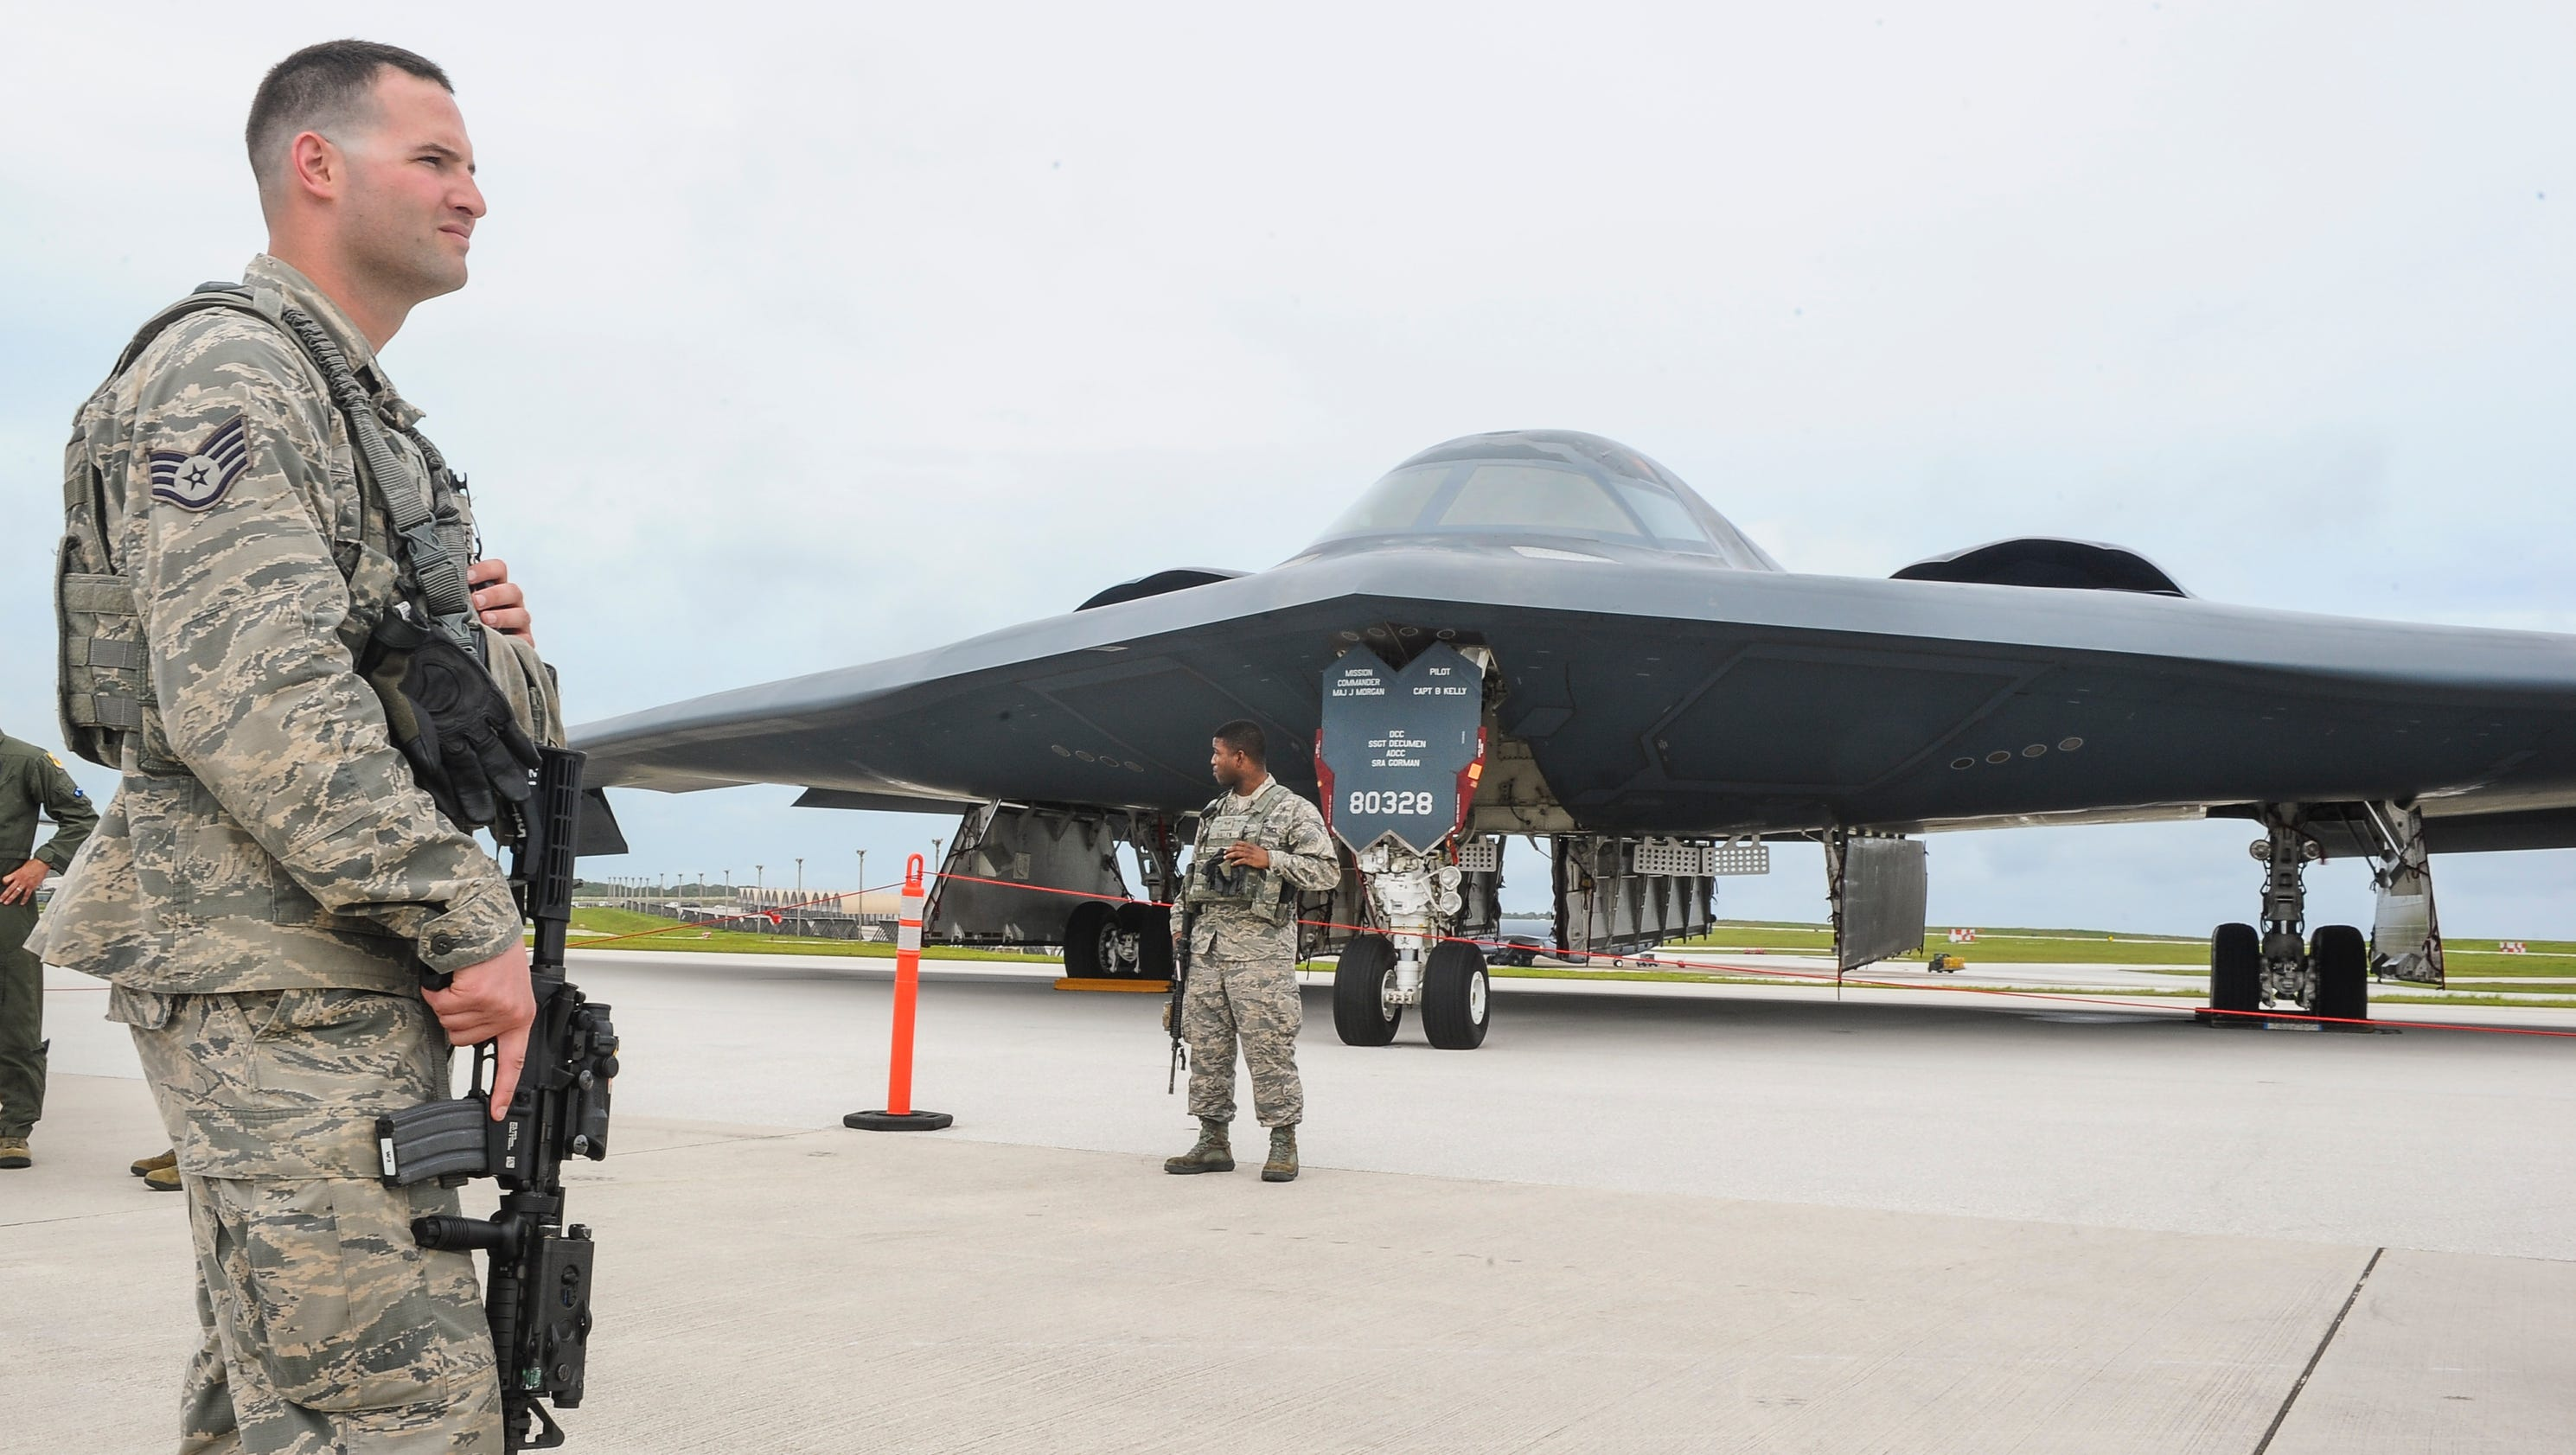 andersen air force base hosts a unique gathering of bombers